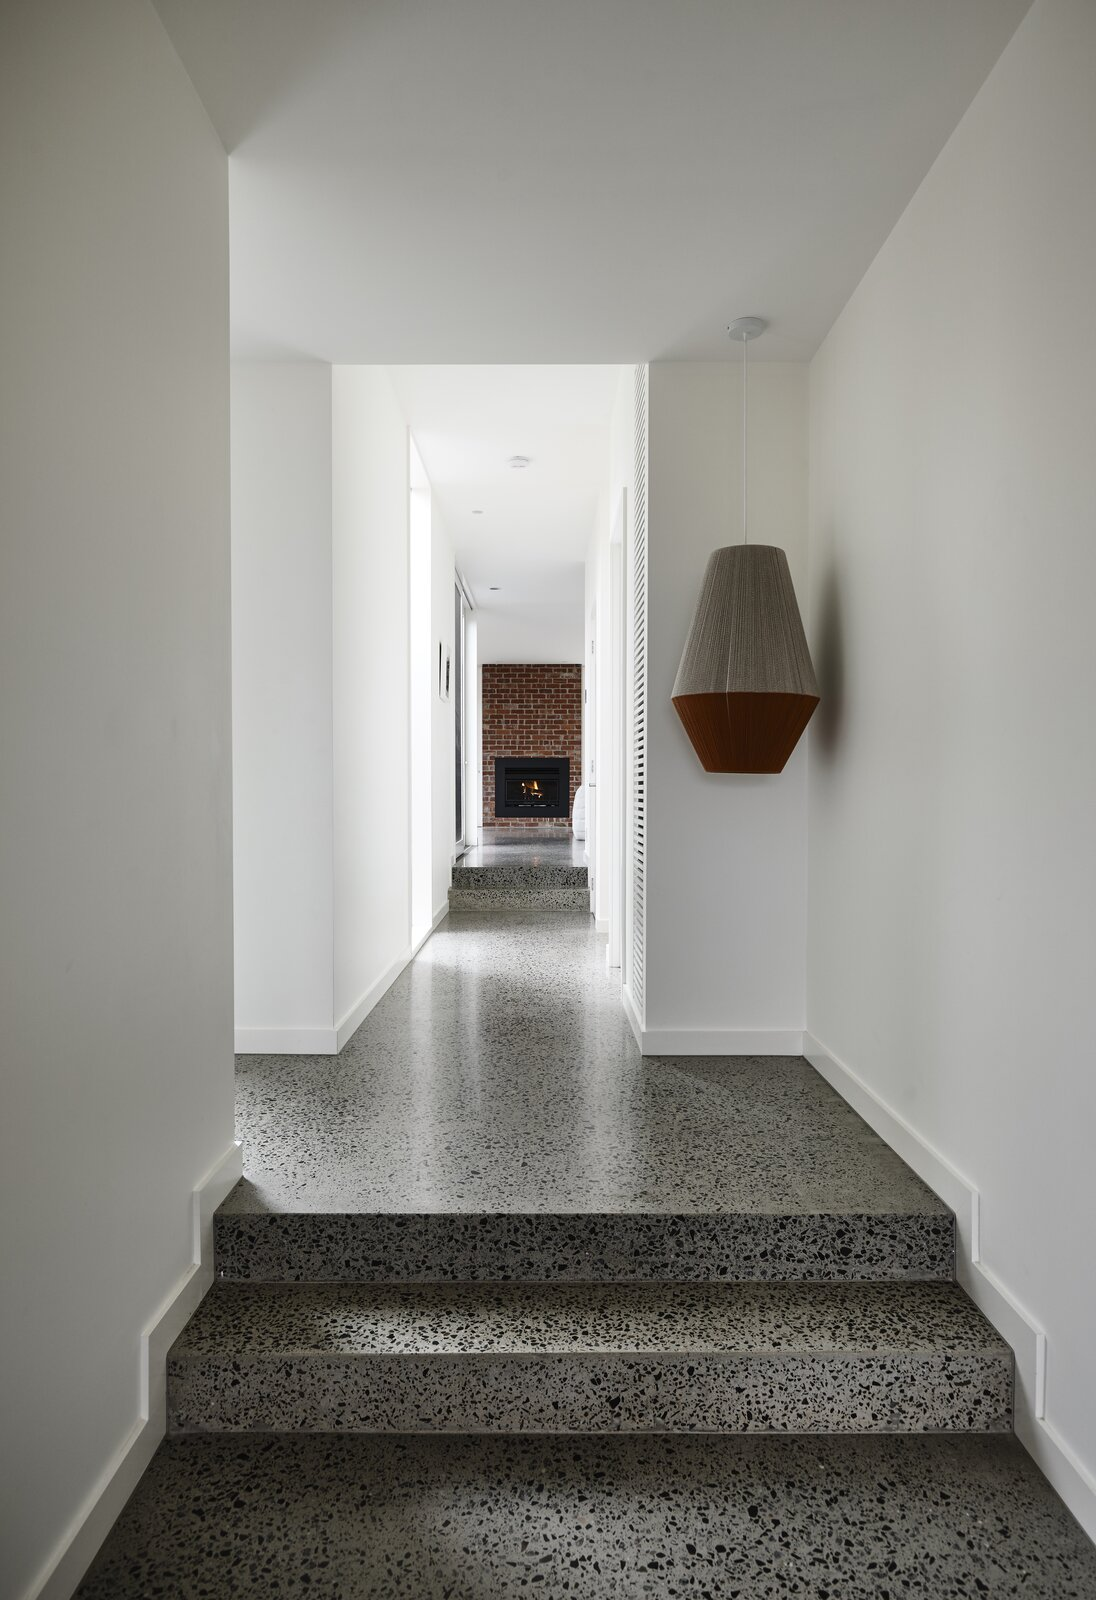 Photo 3 of 25 in This Melbourne Home Sits Pretty on a Slightly Sloped Site